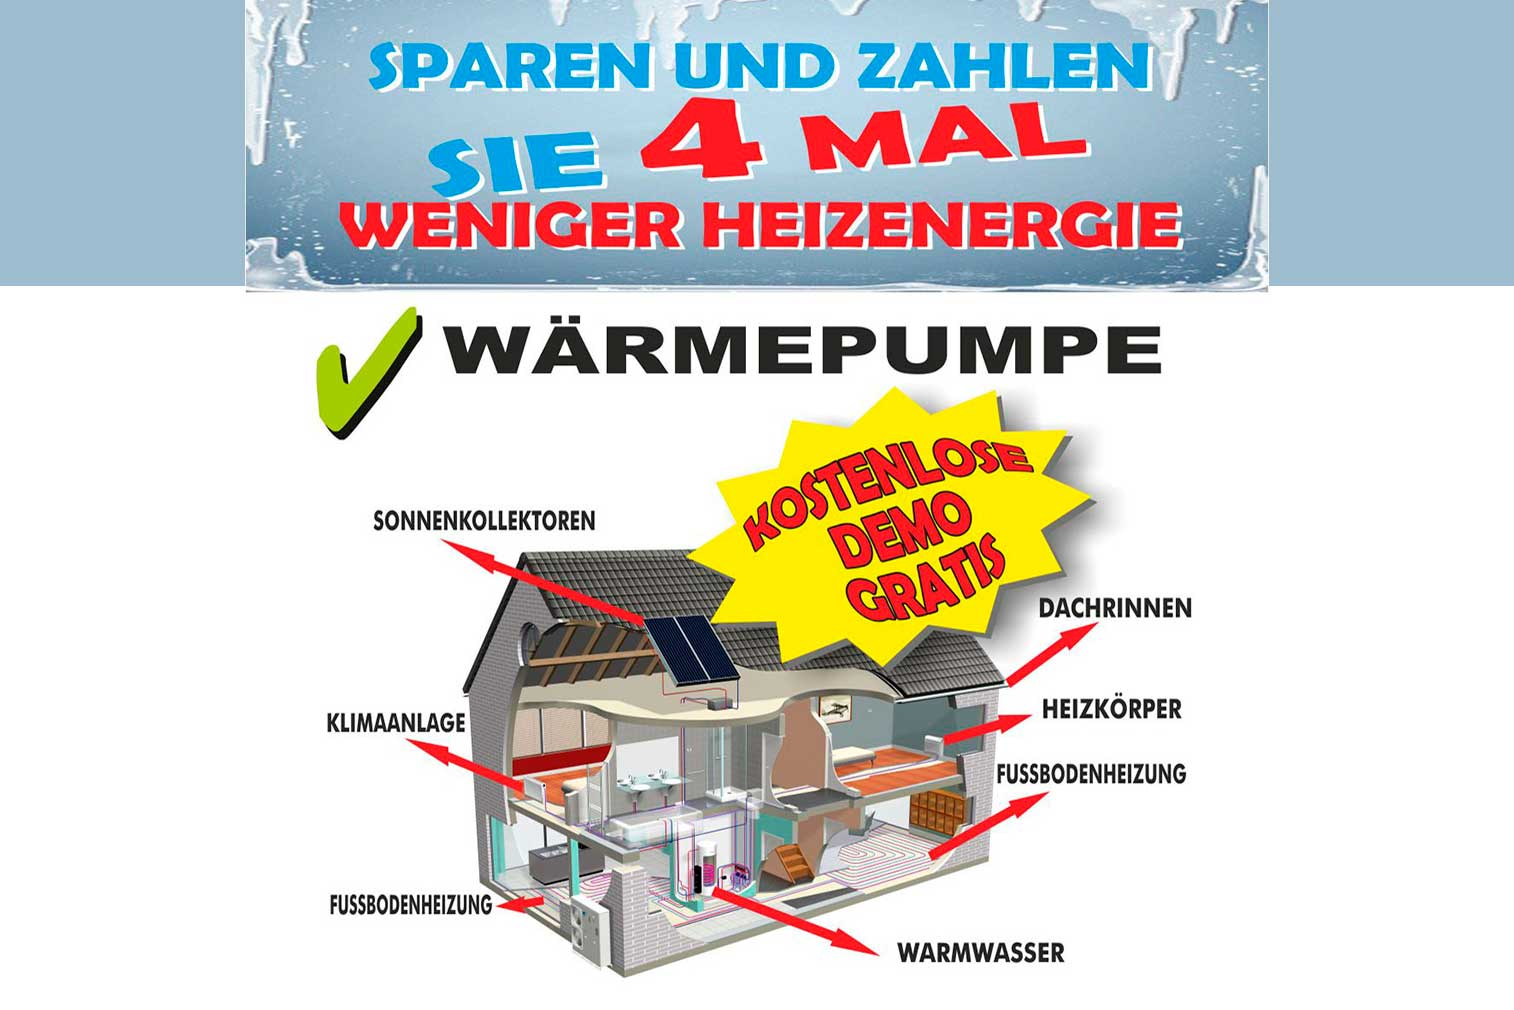 Pool Wärmepumpe Fußbodenheizung Find The Best Heating System To Combat The Cold Of Your Home